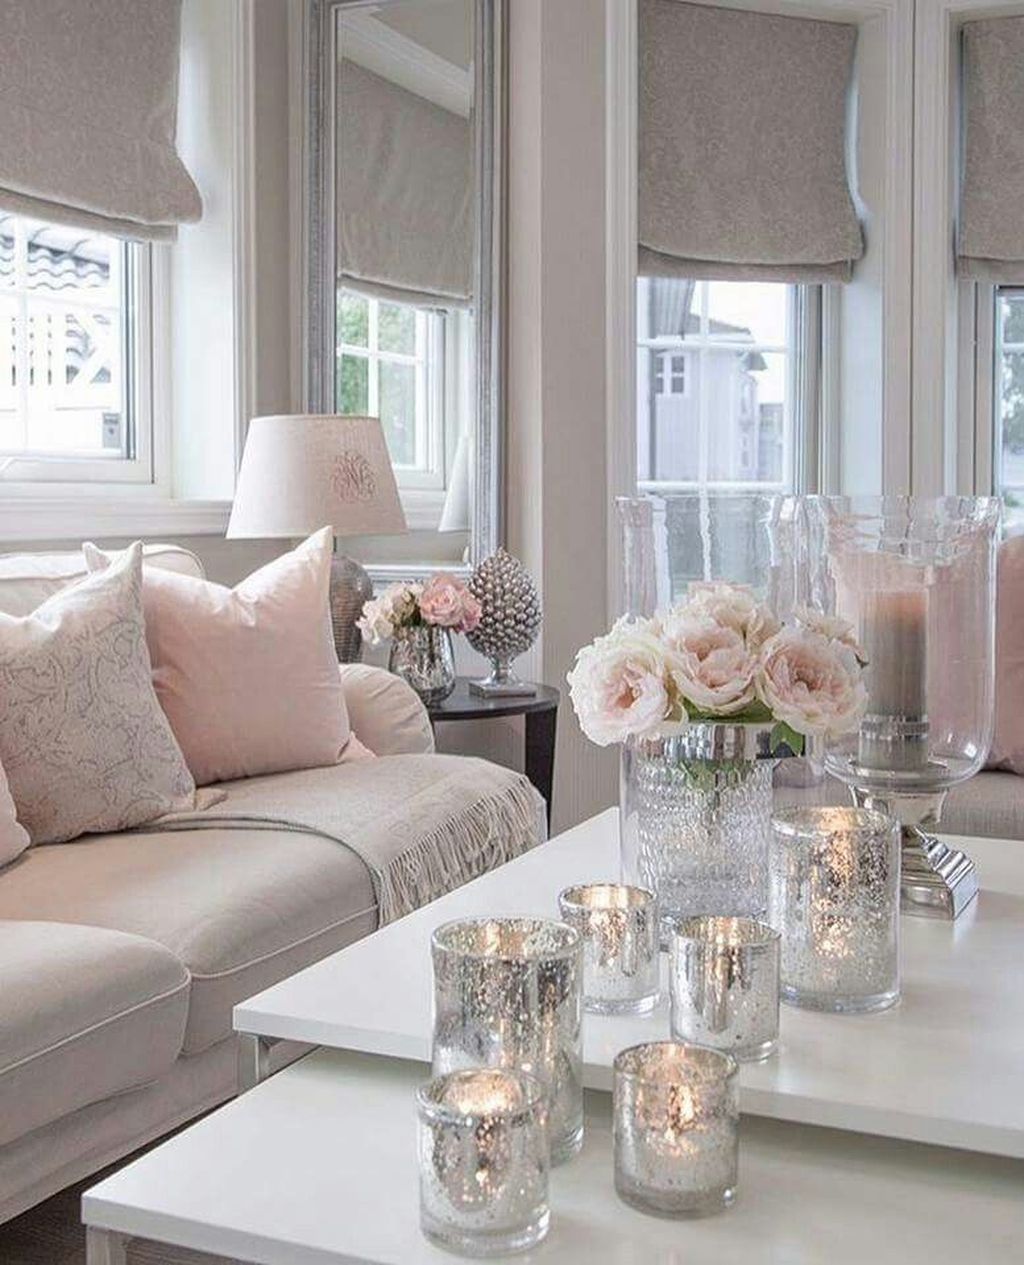 37 Cute Pink Living Room Design Ideas images